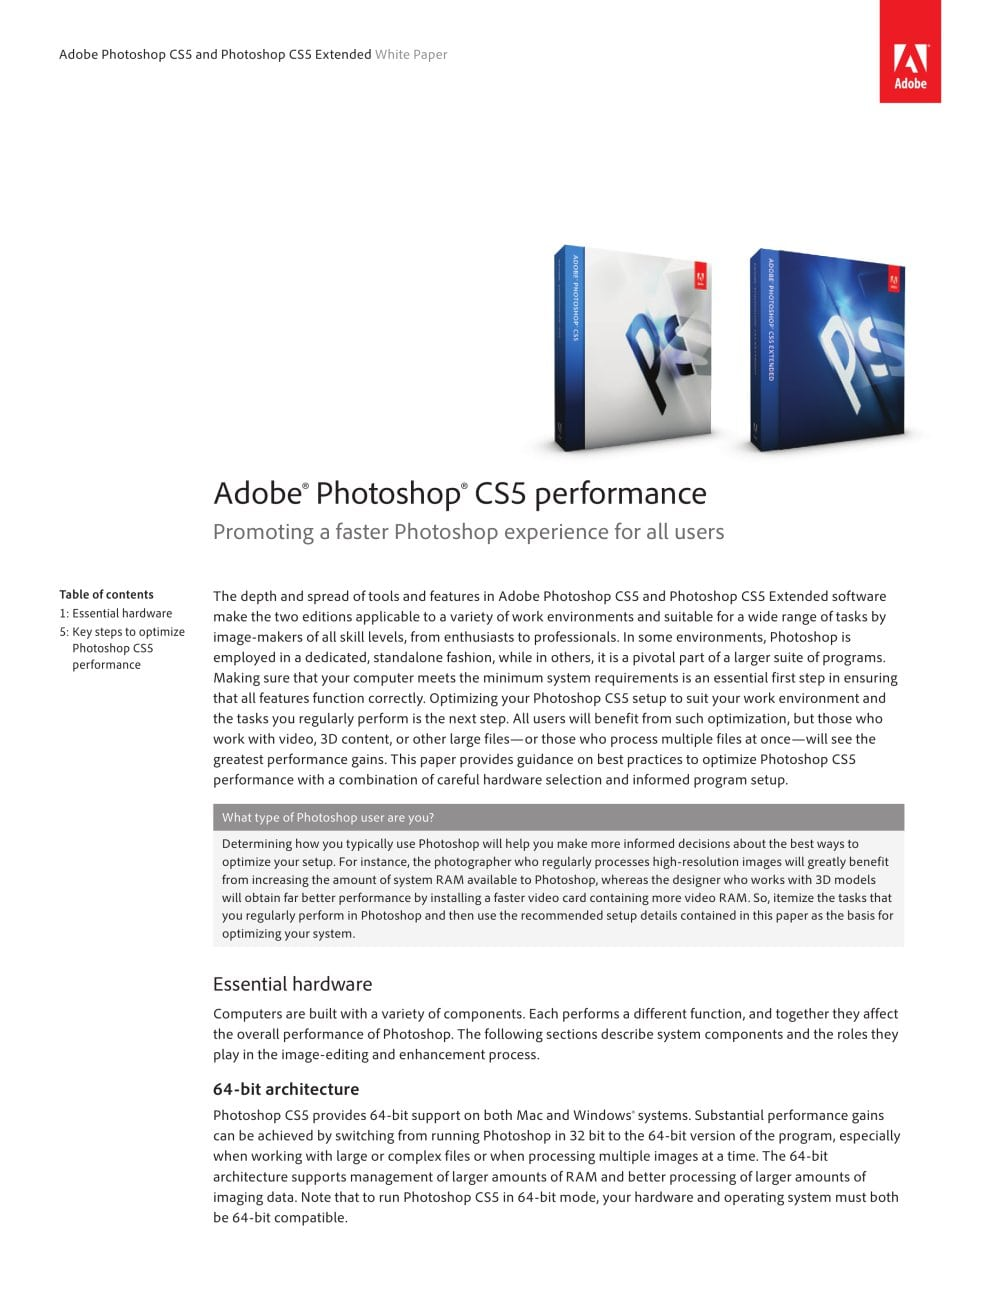 How To Use Photoshop Cs5 Pdf